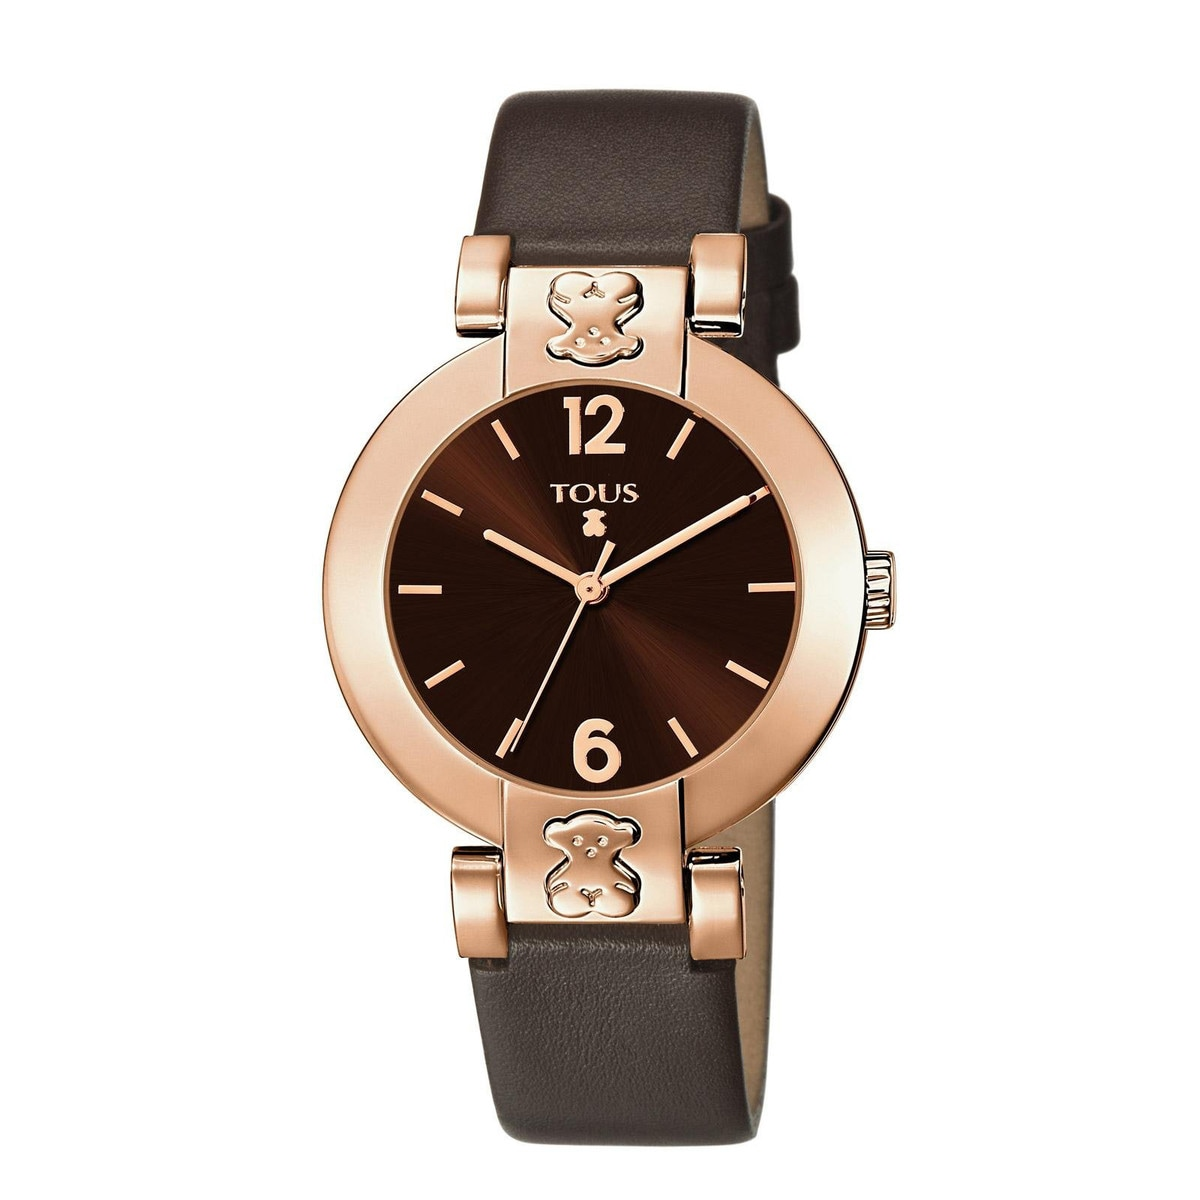 Pink IP Steel Plate Round Watch with brown Leather strap